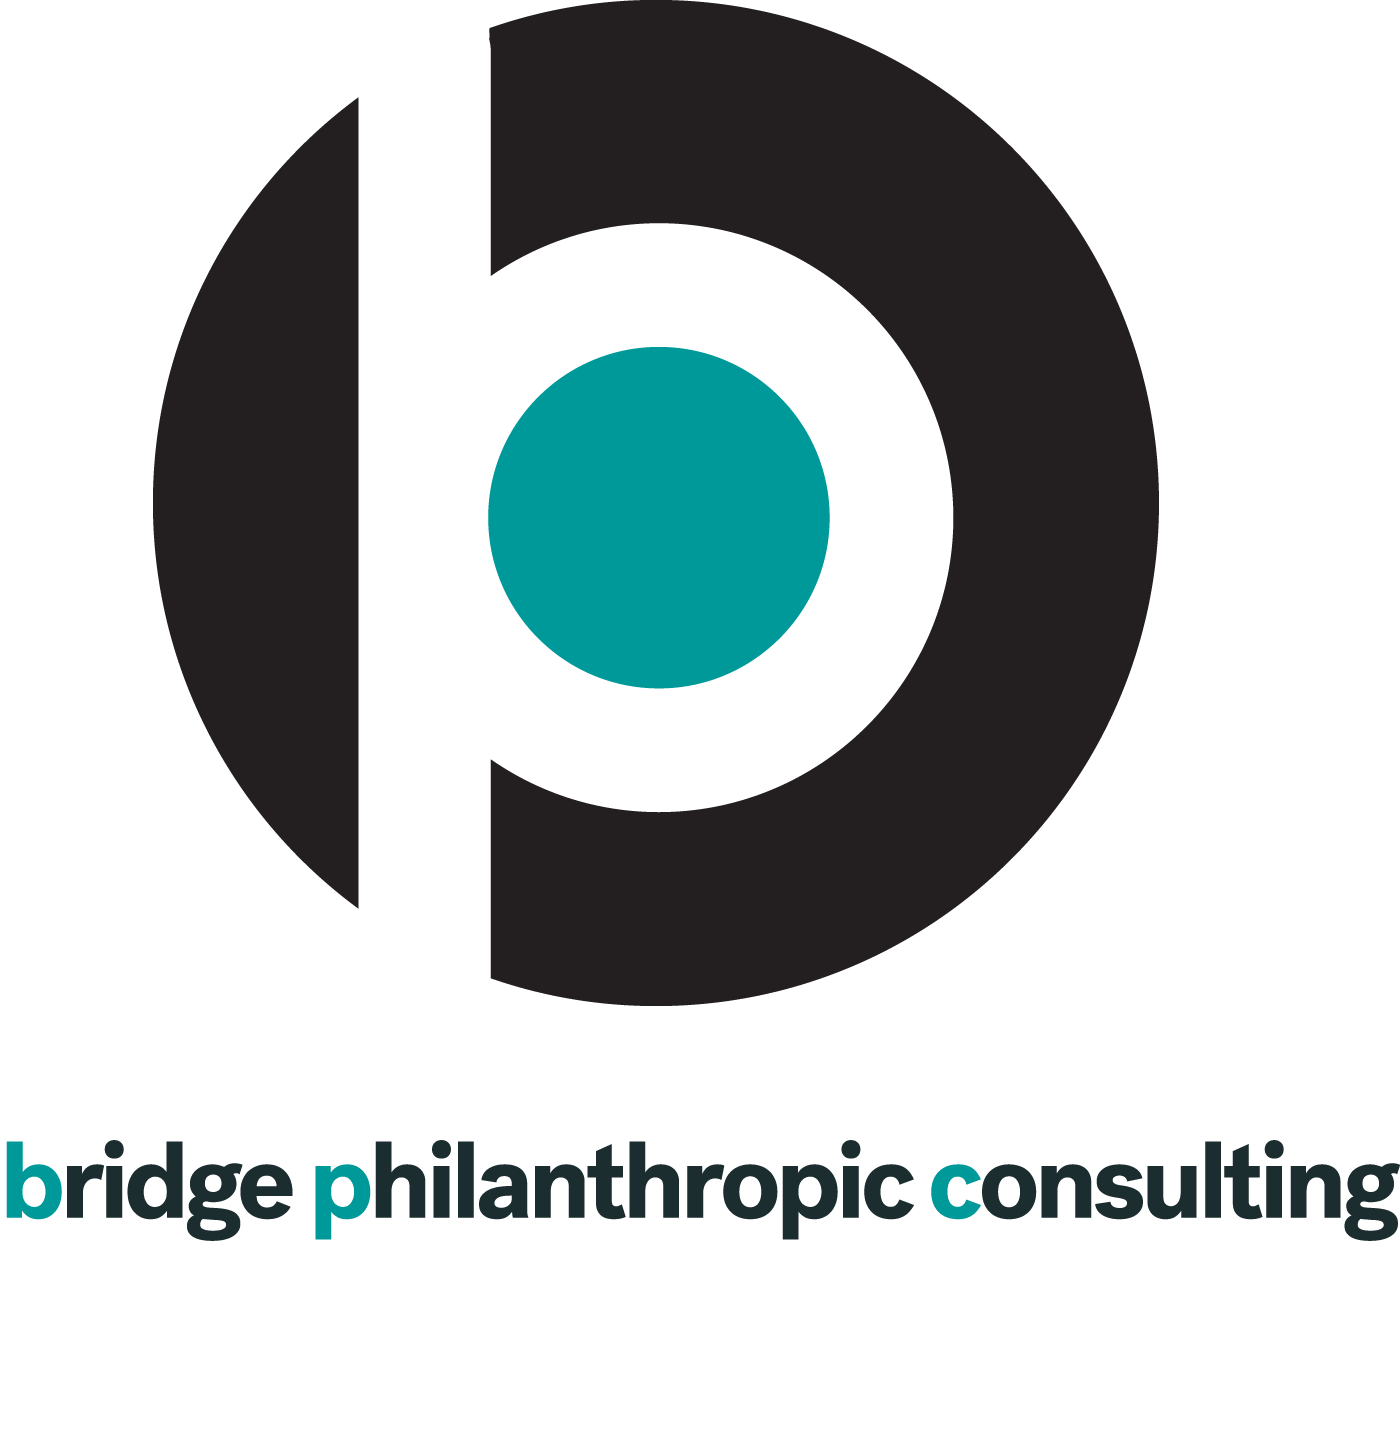 Bridge Philanthropic Consulting